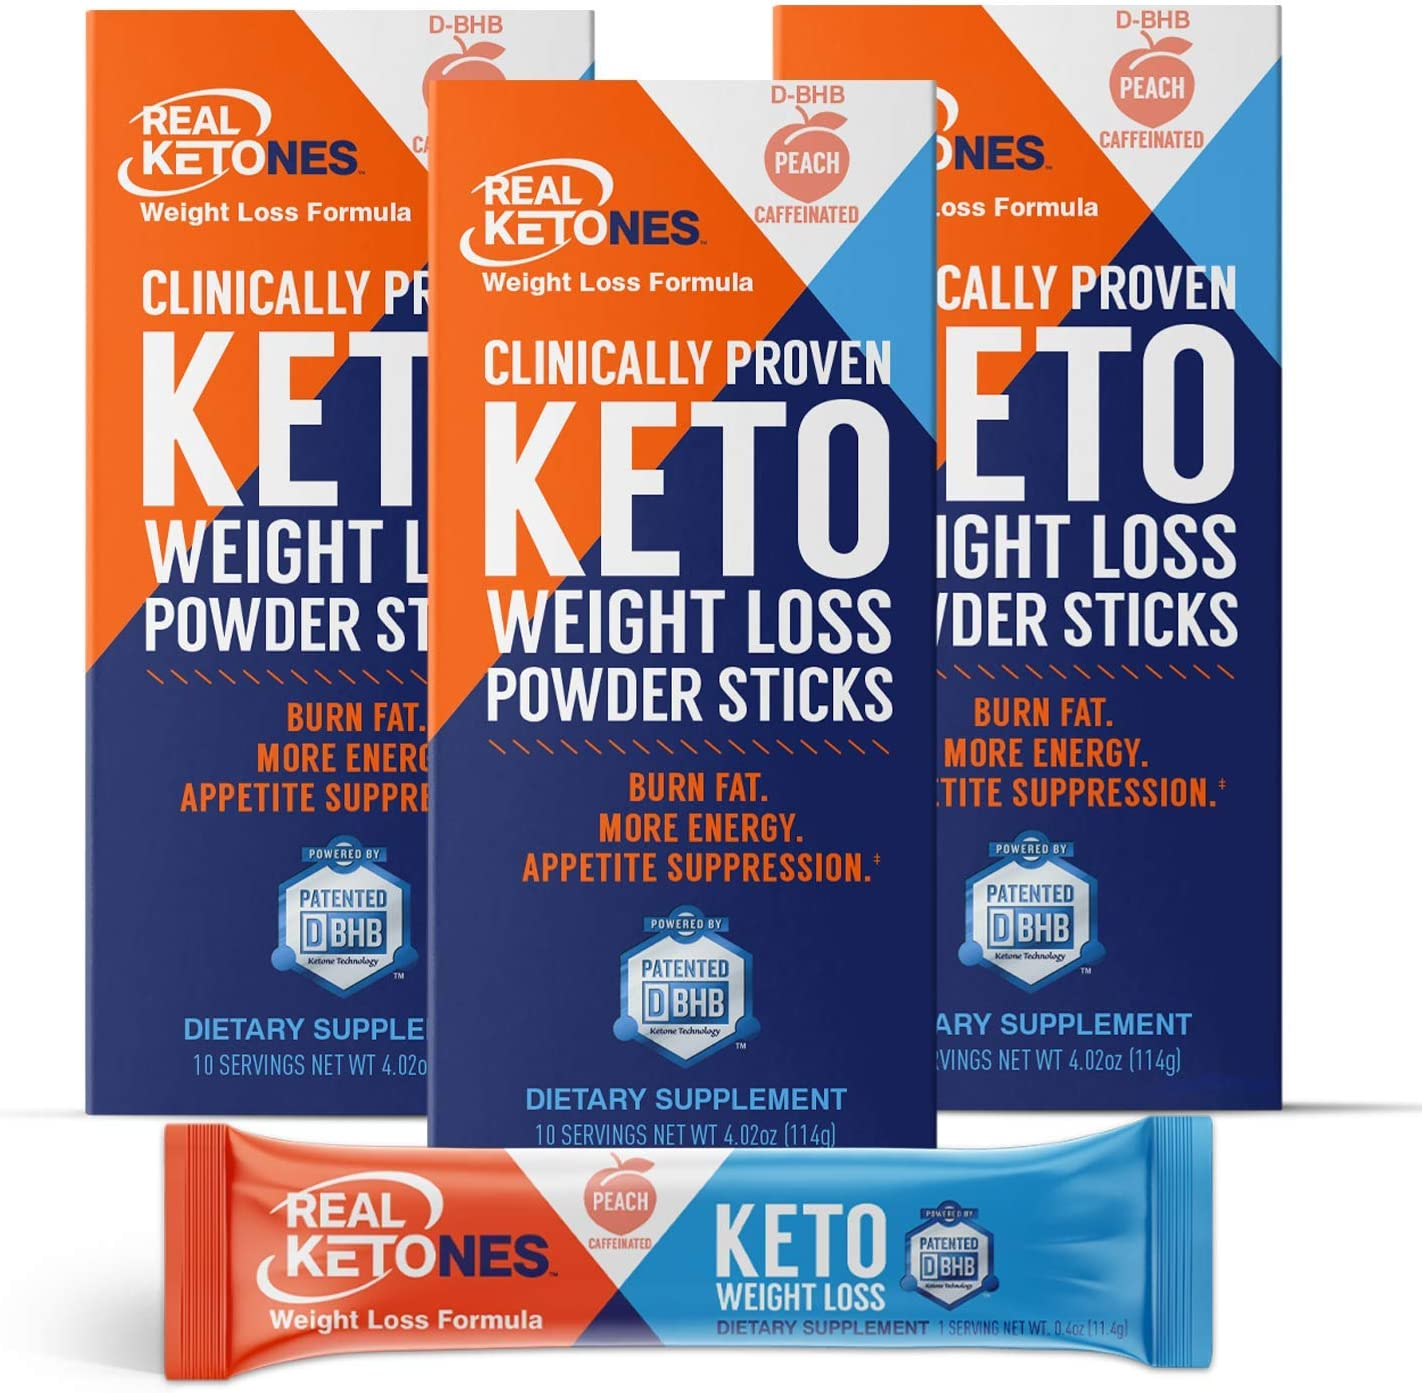 Real Ketones- Exogenous Keto D-BHB Powder 30 Safety and trust Caffeine- with Nippon regular agency Stic